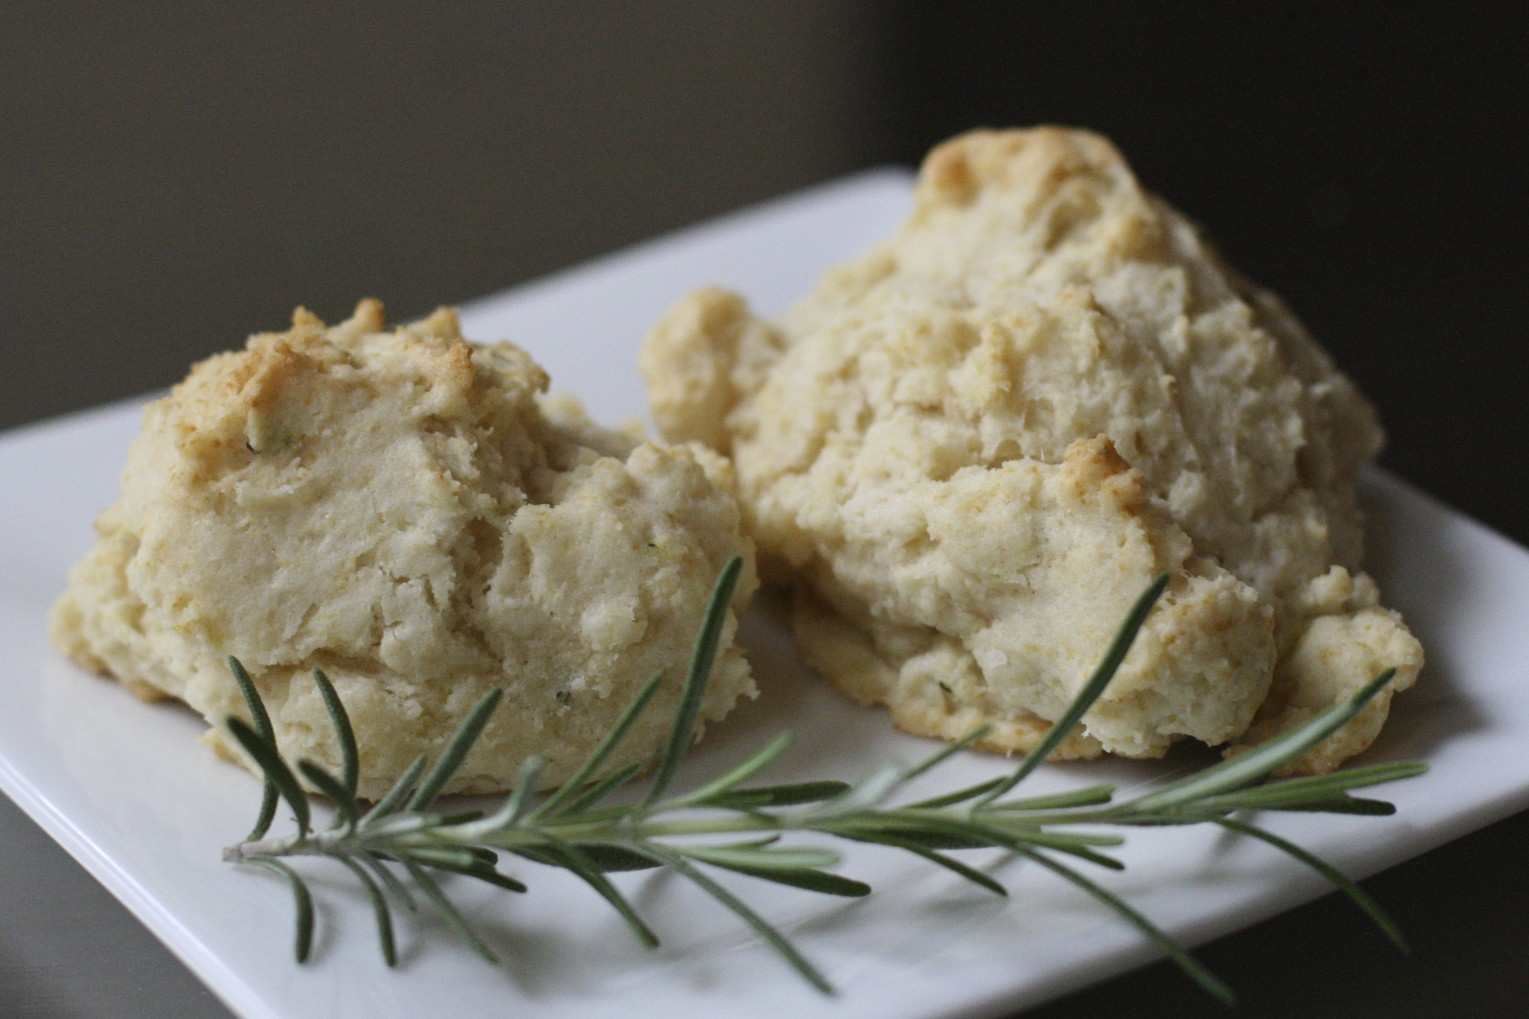 rosemary cream drop biscuits - The Merry Gourmet